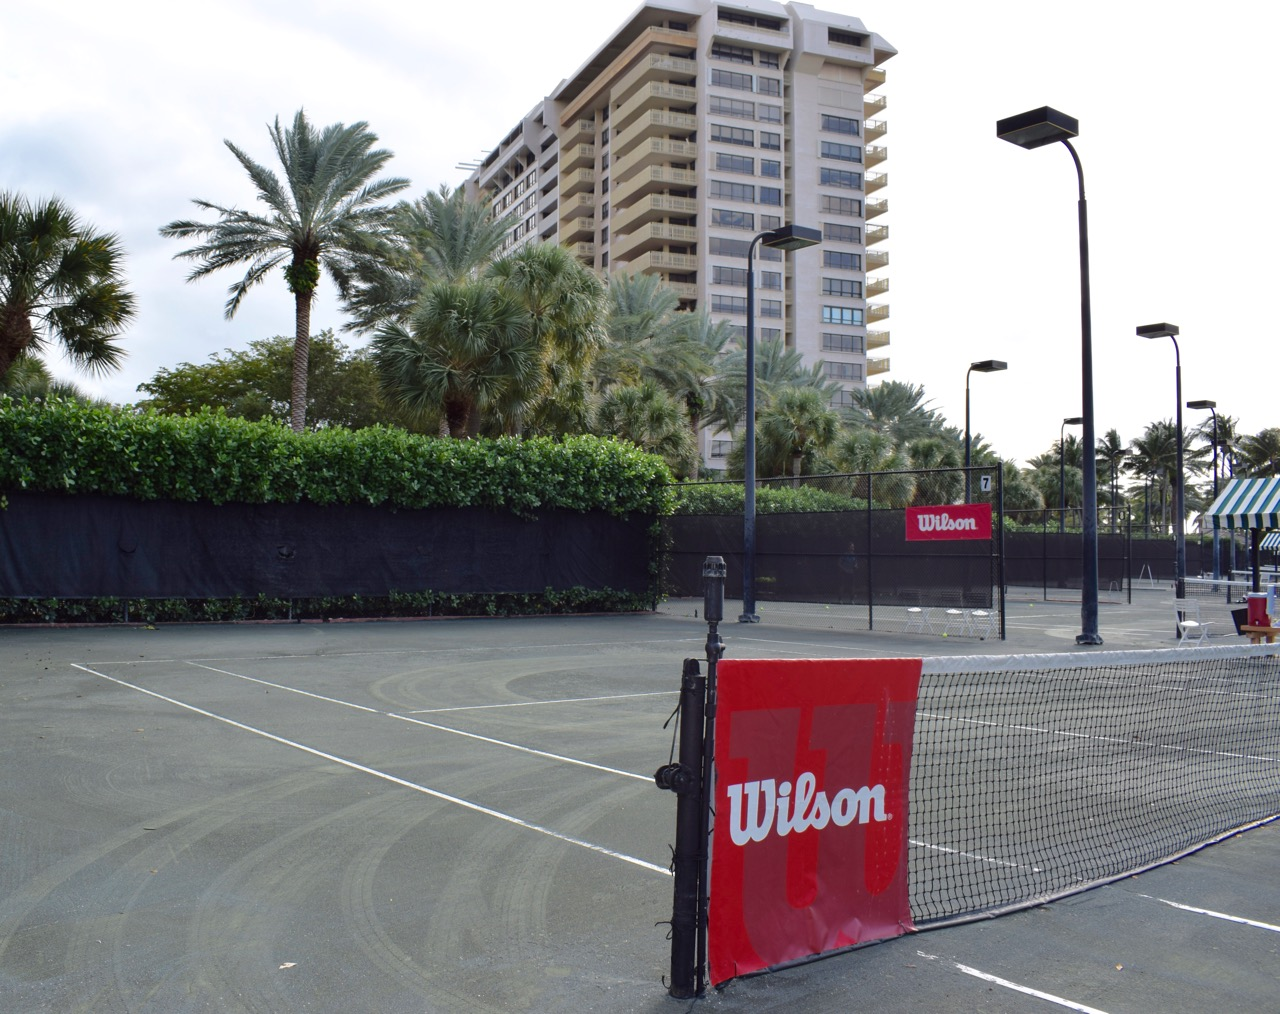 The Club at Grove Isle // Compete on These Cliff Drysdale Tennis Courts Lining Biscayne Bay